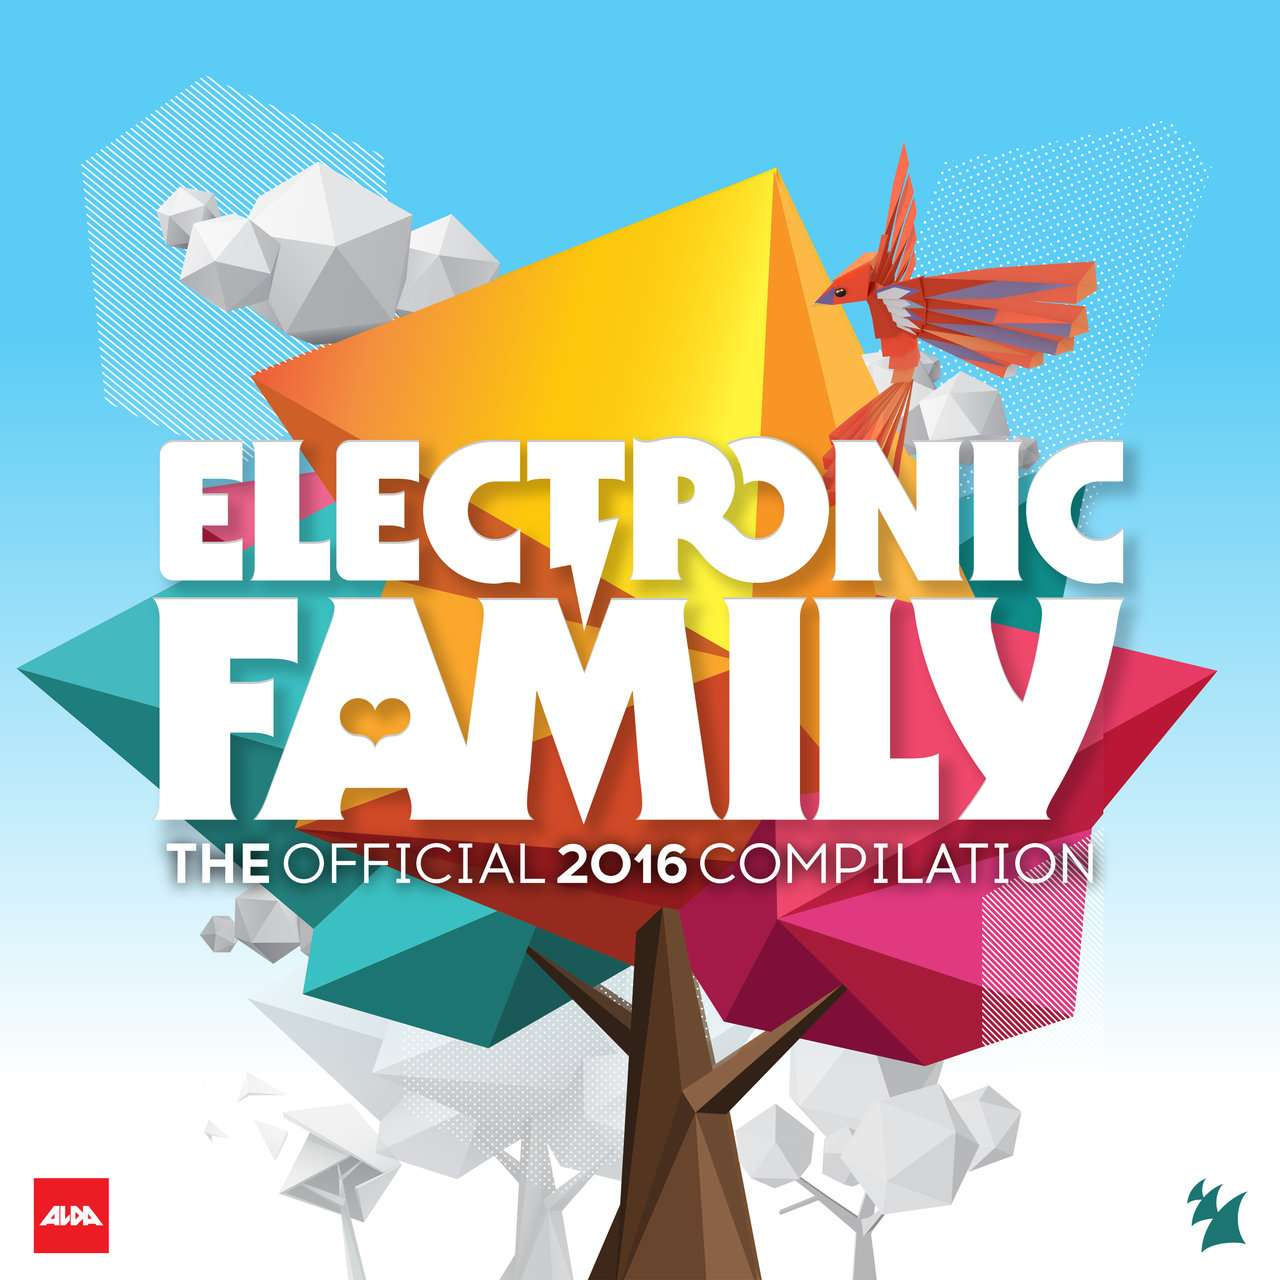 Armada《Electronic Family – The Official 2016 Compilation》[CD级无损/44.1kHz/16bit]